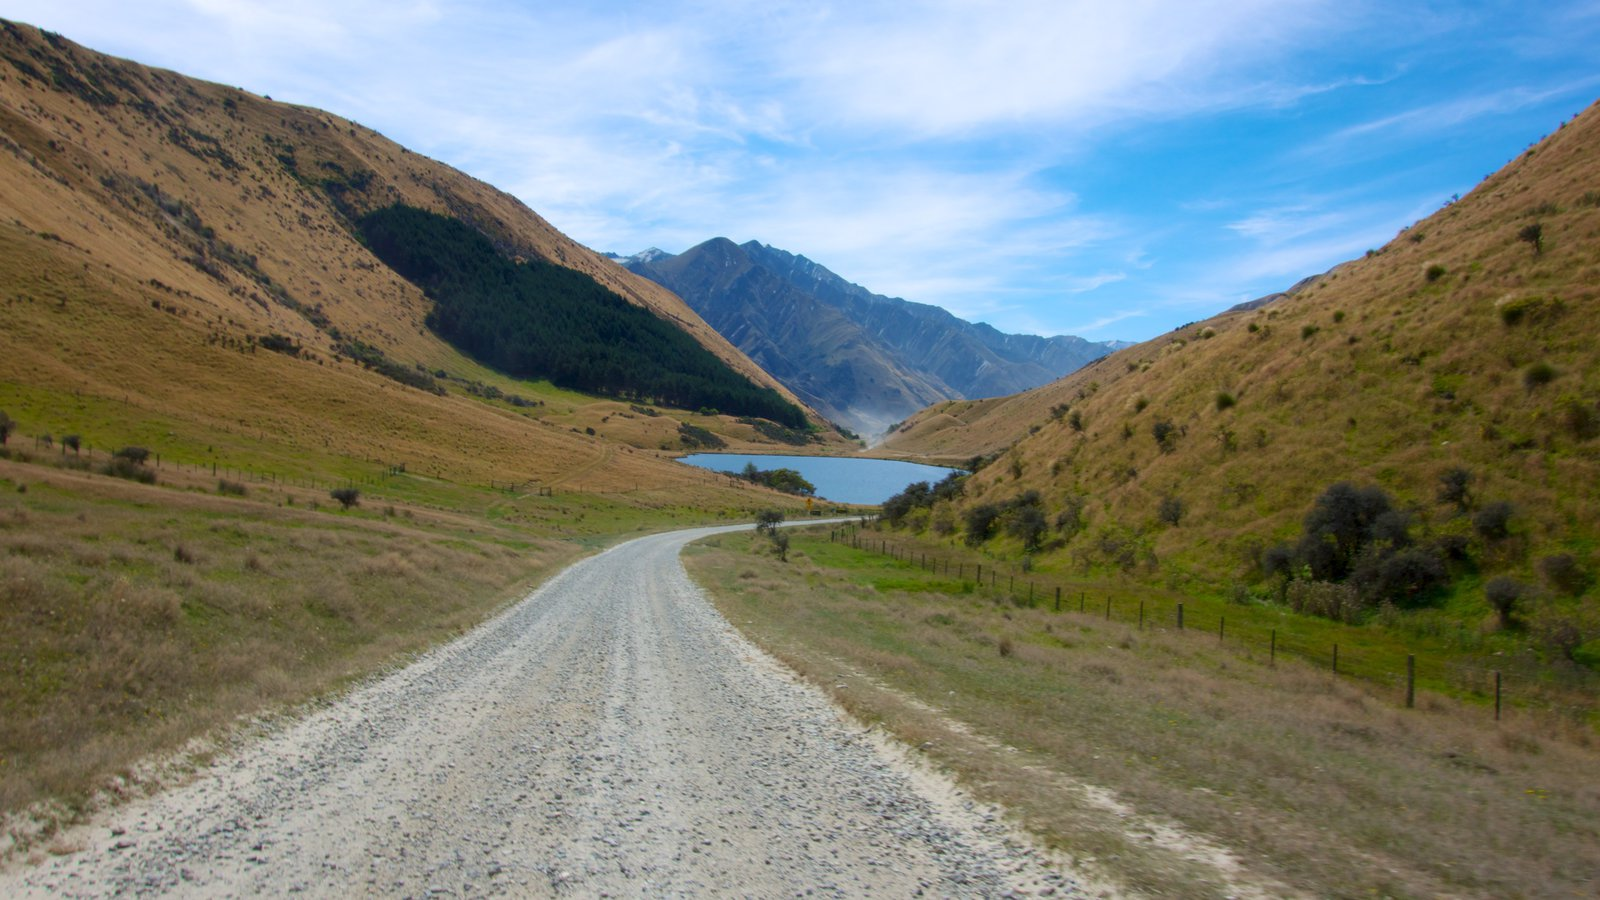 Queenstown featuring tranquil scenes, mountains and landscape views